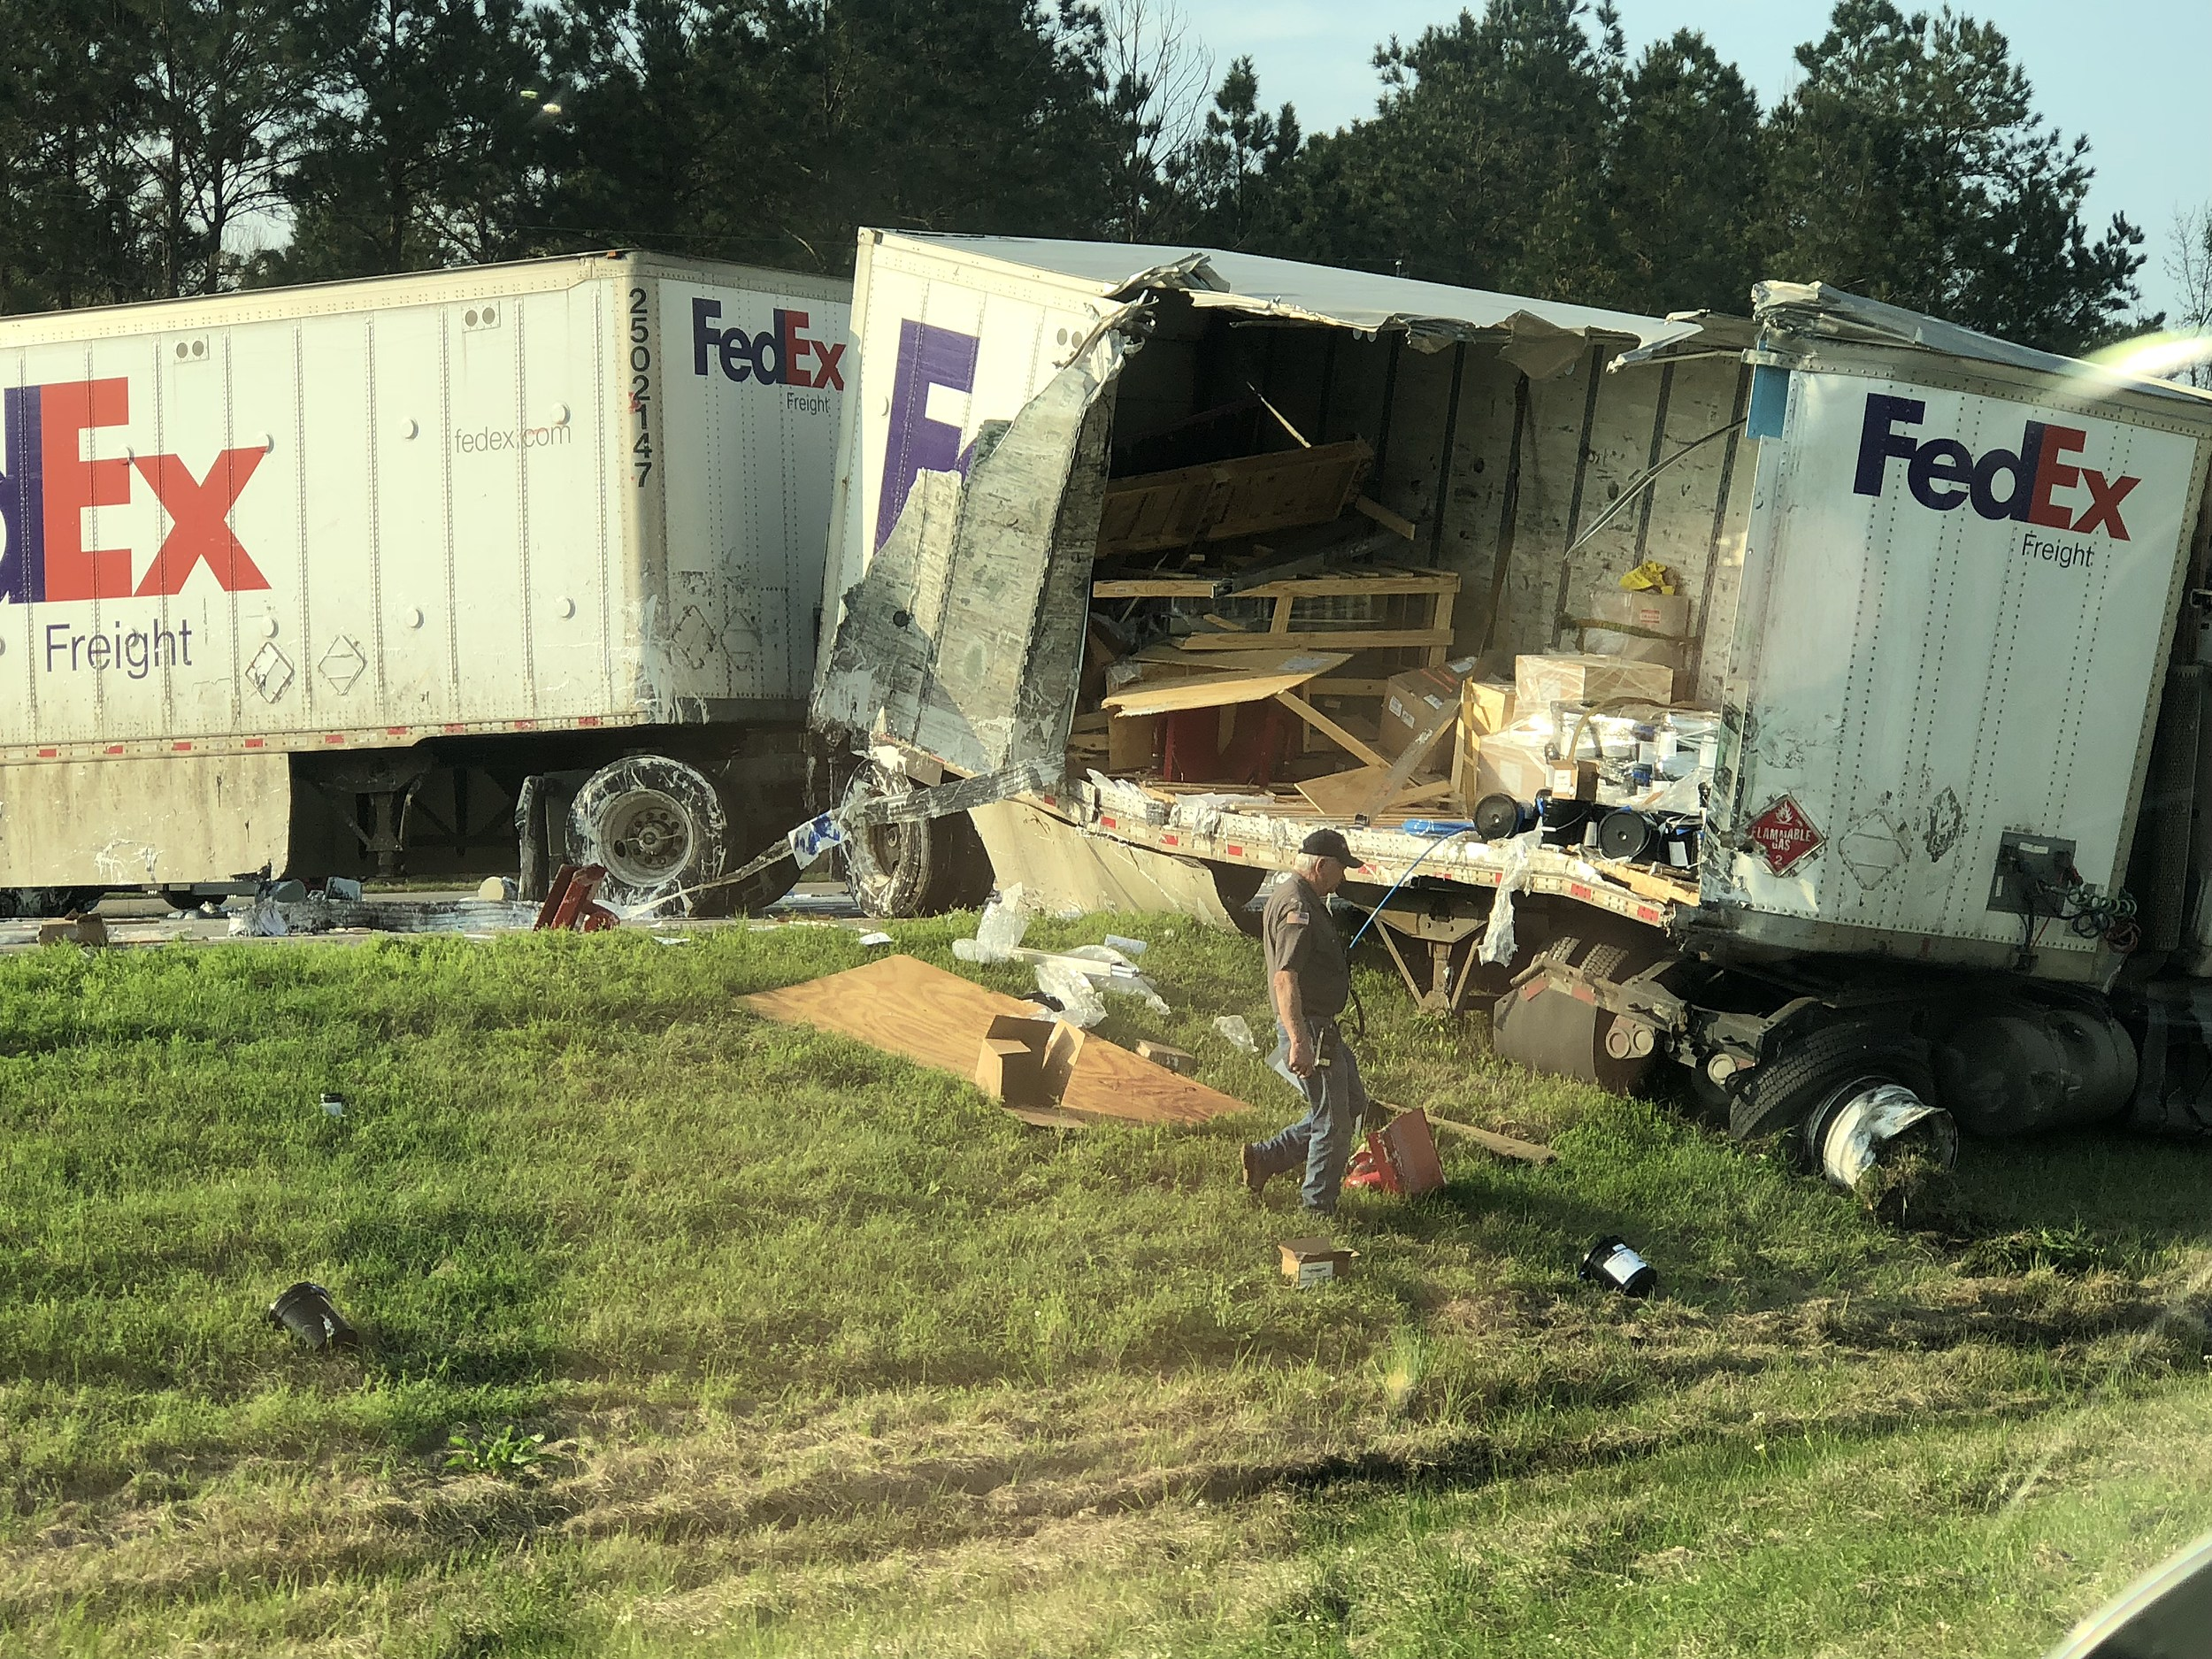 Fed Ex Truck Spill Causes Big Delays on I-10 By LA/TX State Line